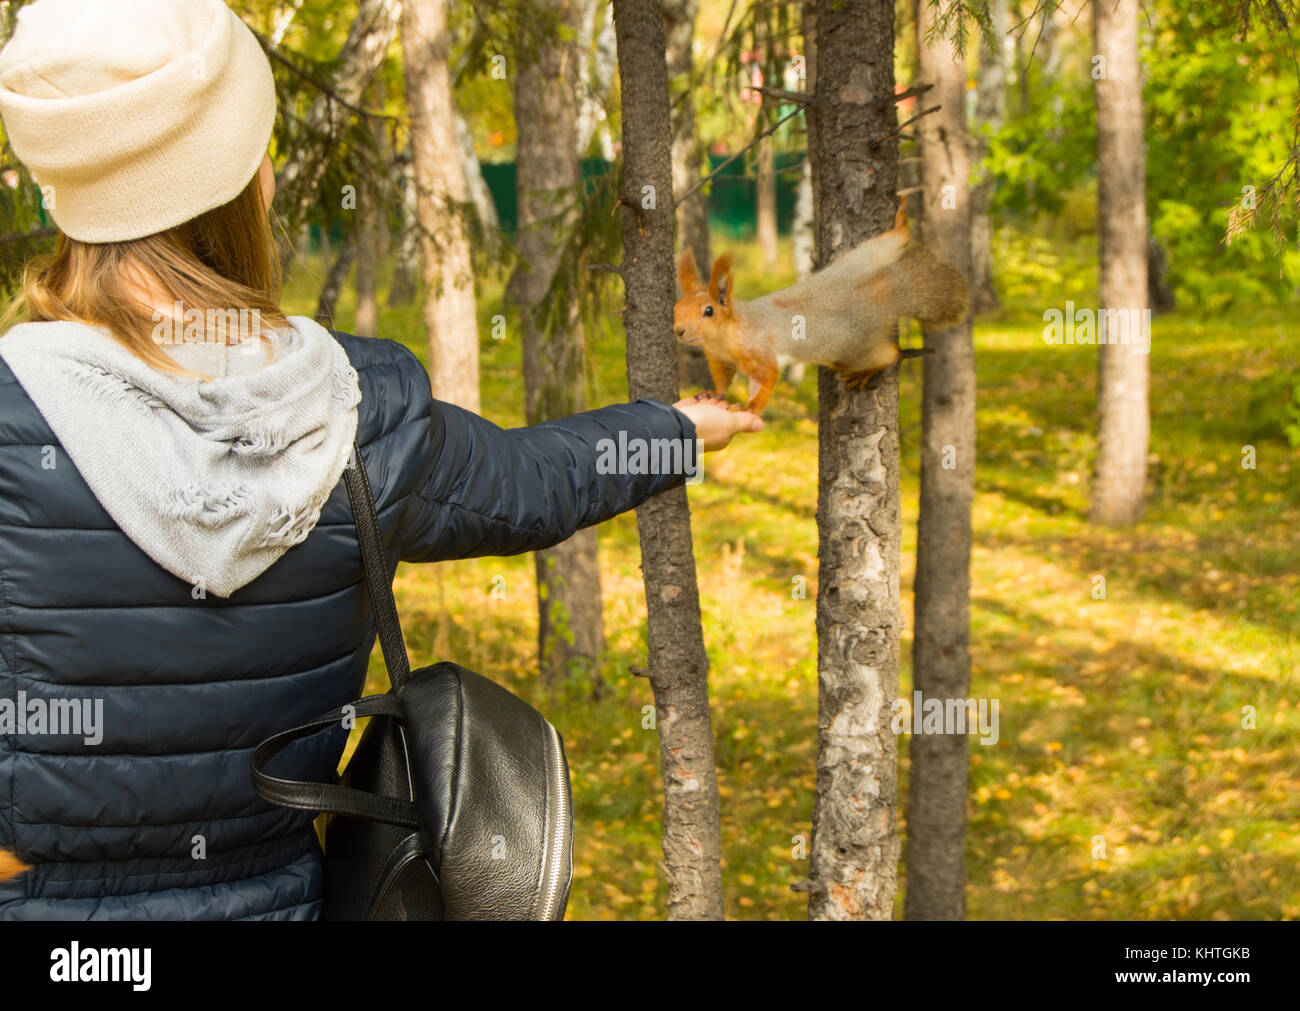 Girl hipster feeding a grey squirrel with a fluffy tail in autumn Park. - Stock Image